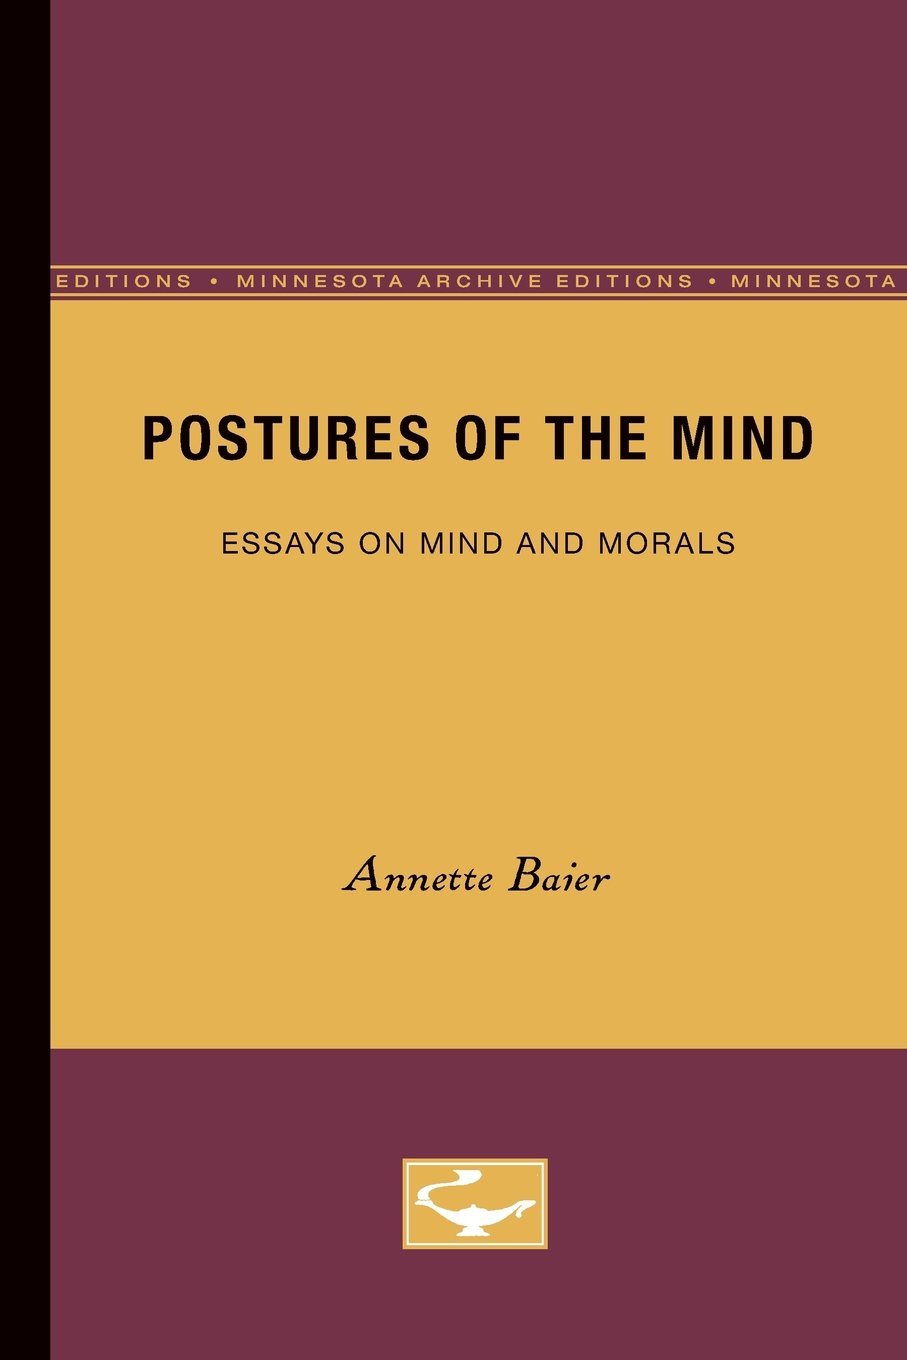 postures of the mind essays on mind and morals annette baier postures of the mind essays on mind and morals annette baier 9780816613274 com books